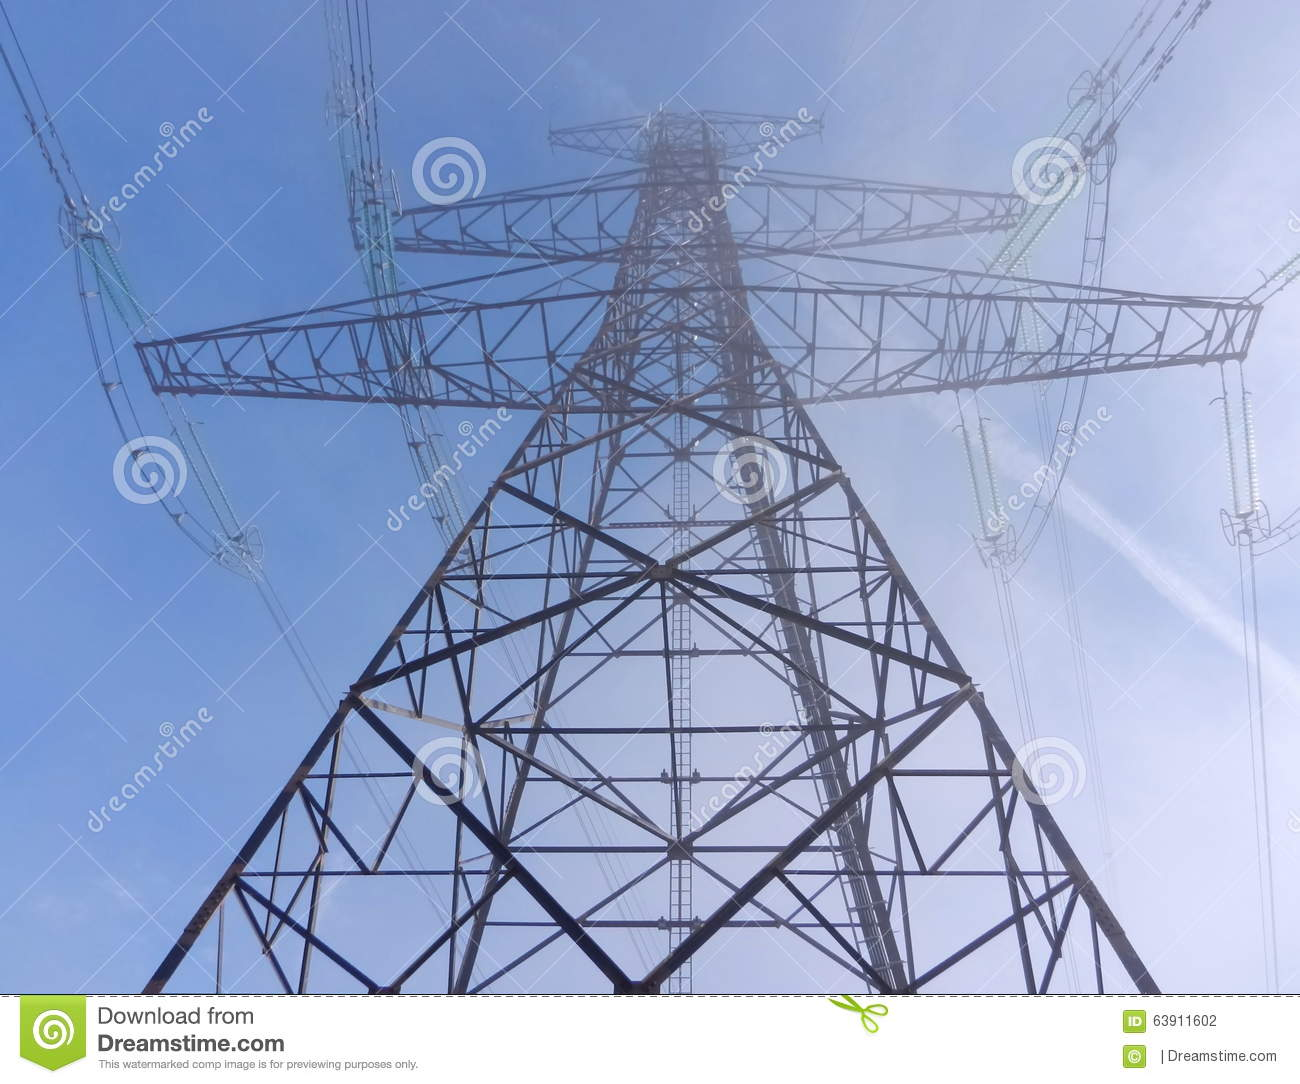 Electricity Wire Tower In A Morning Mist Stock Photo - Image: 63911602